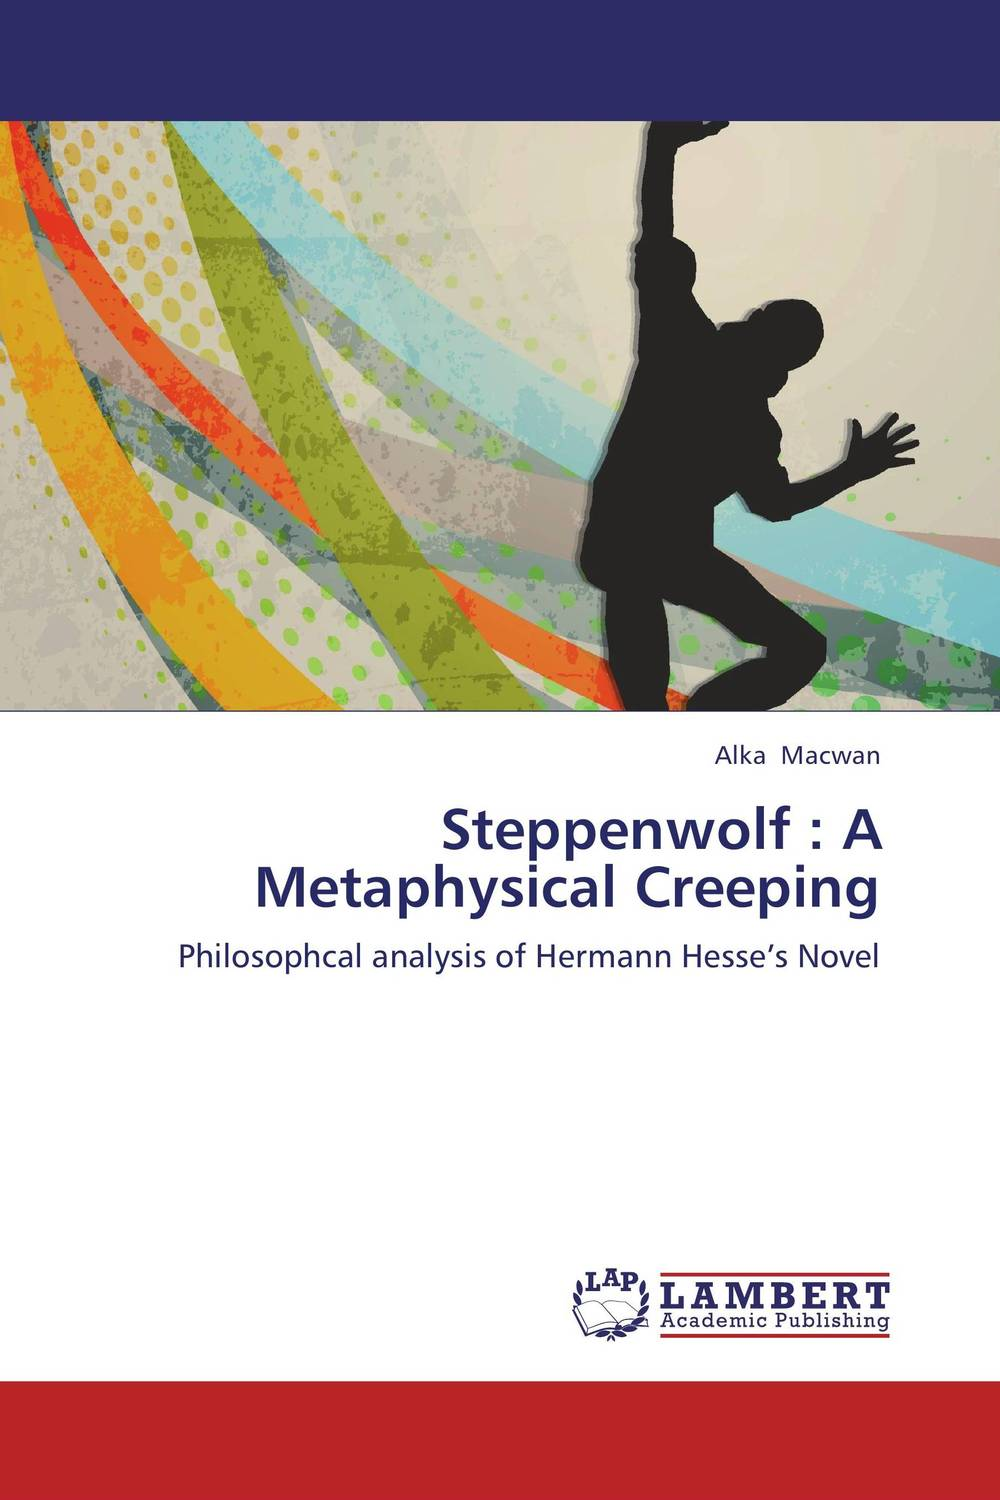 Steppenwolf : A Metaphysical Creeping